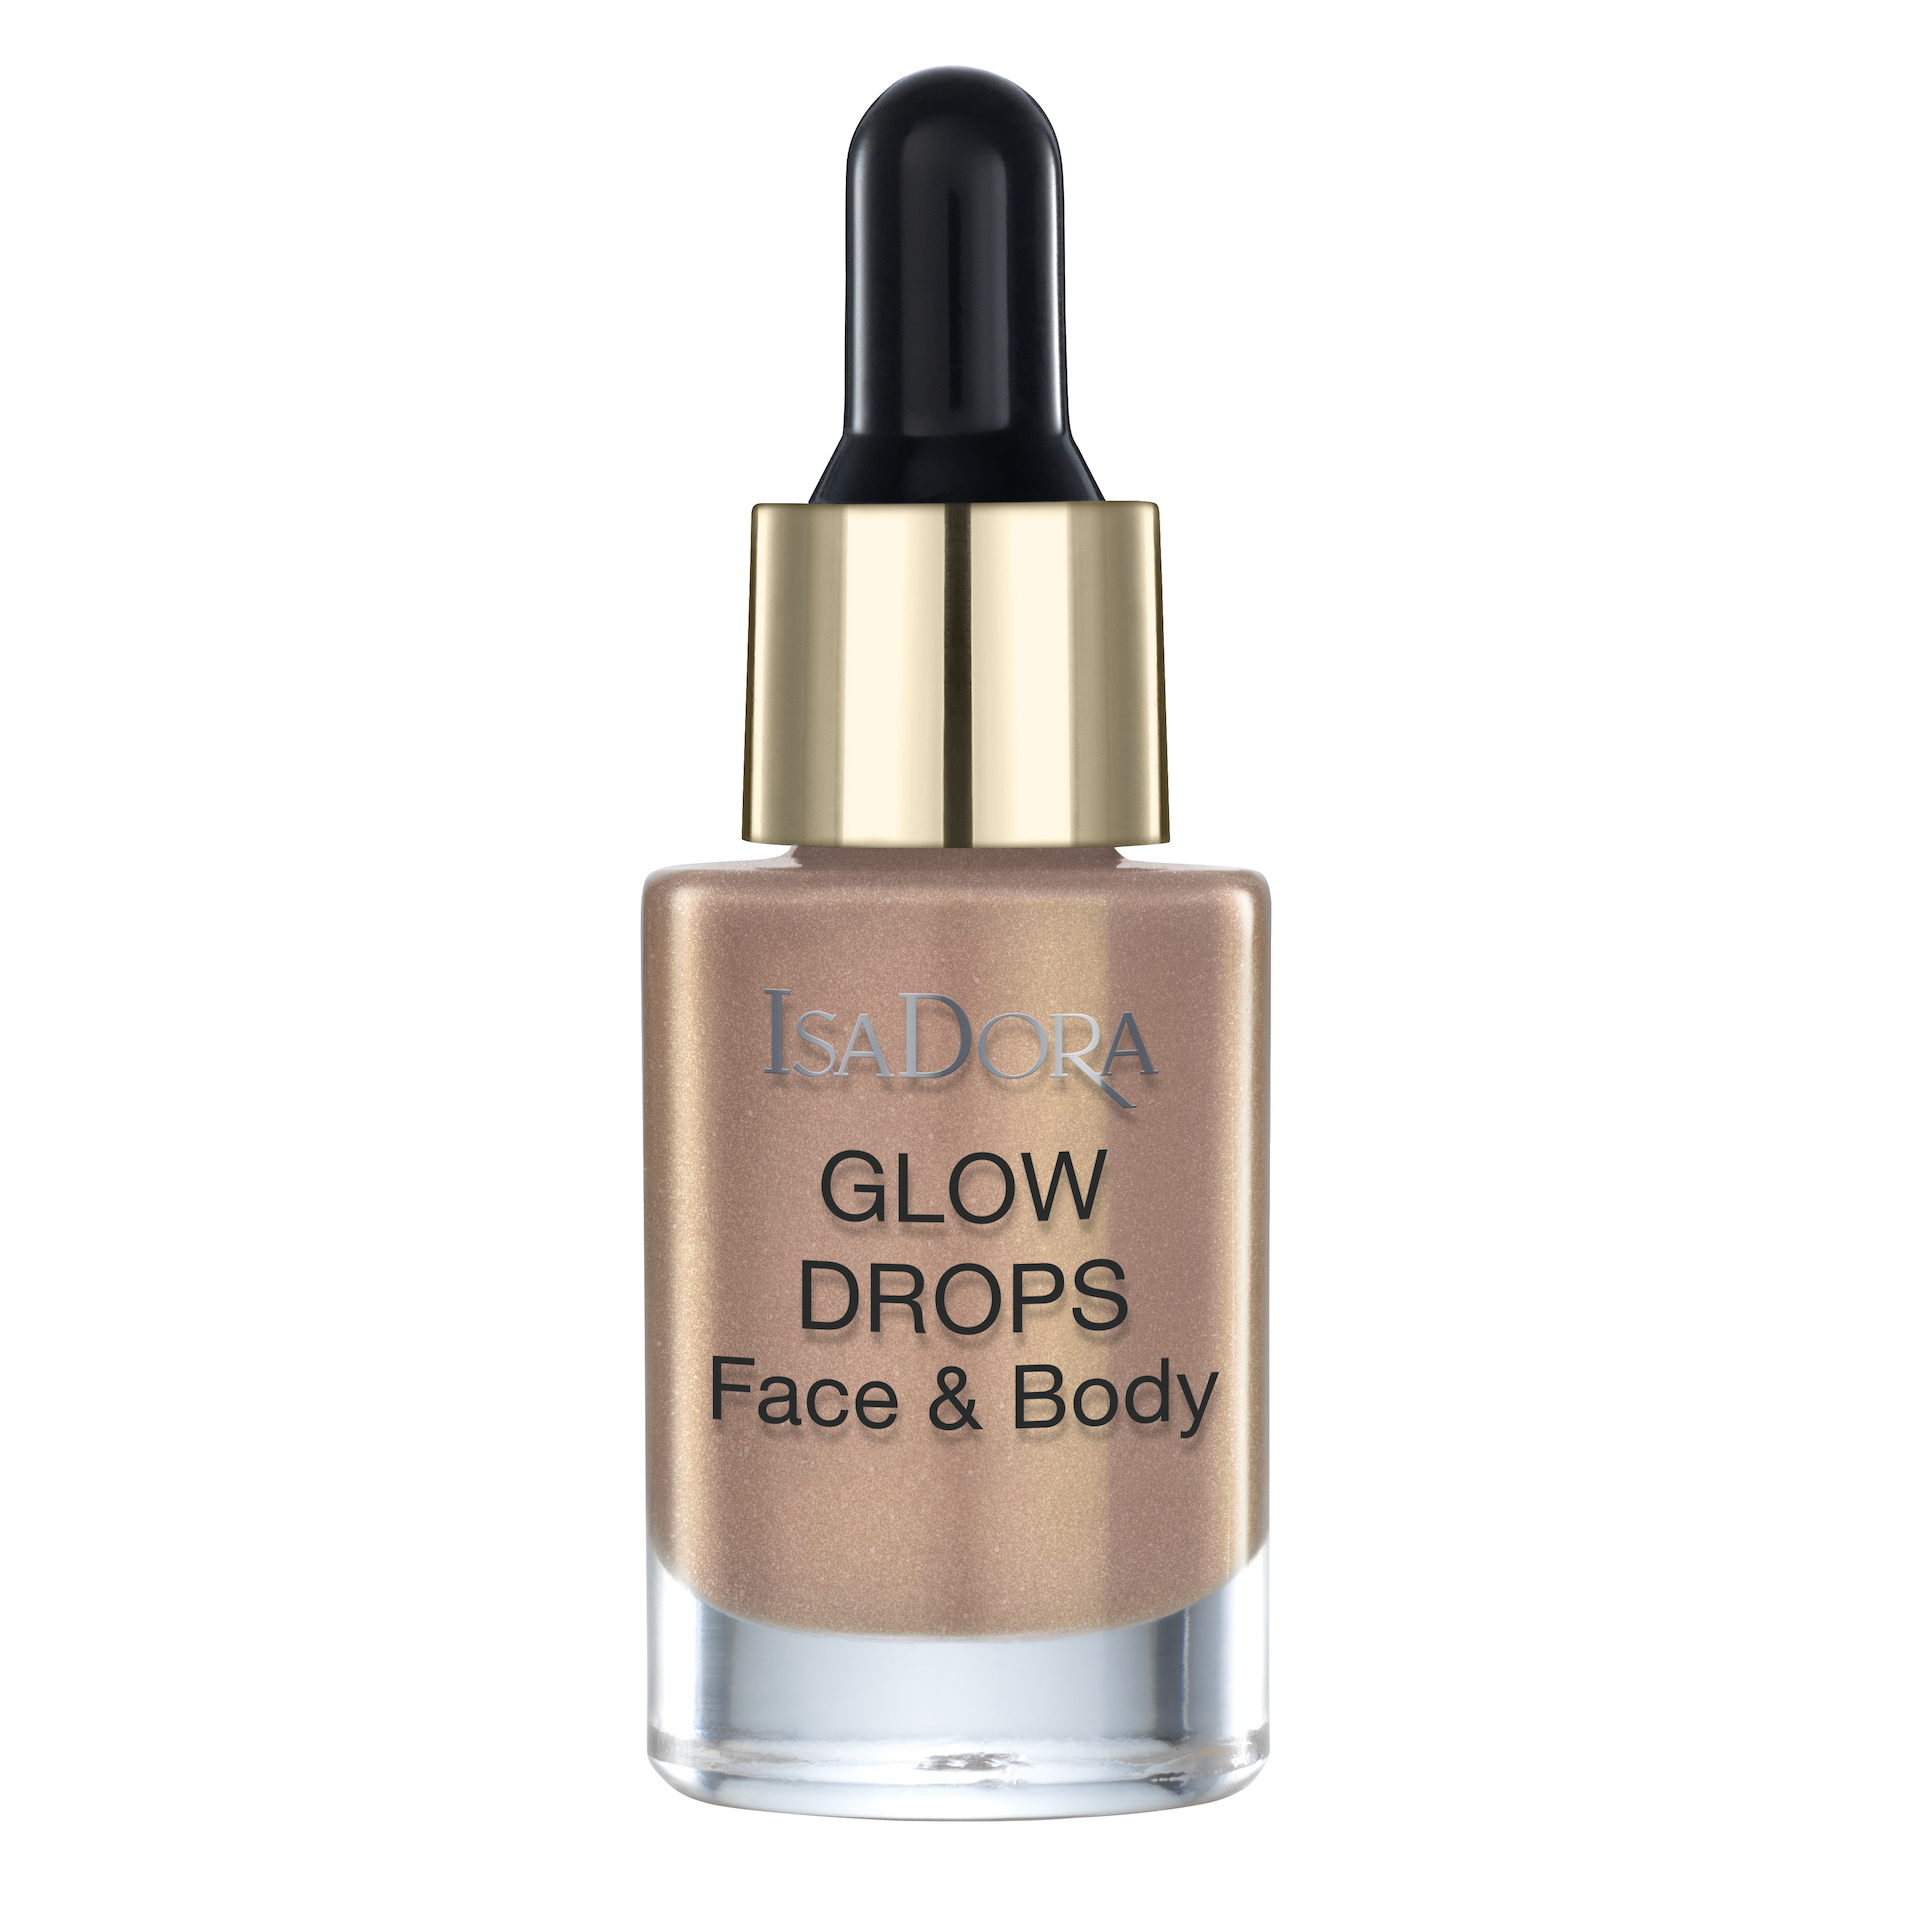 GLOW DROPS Face & Body 73 Golden Glow